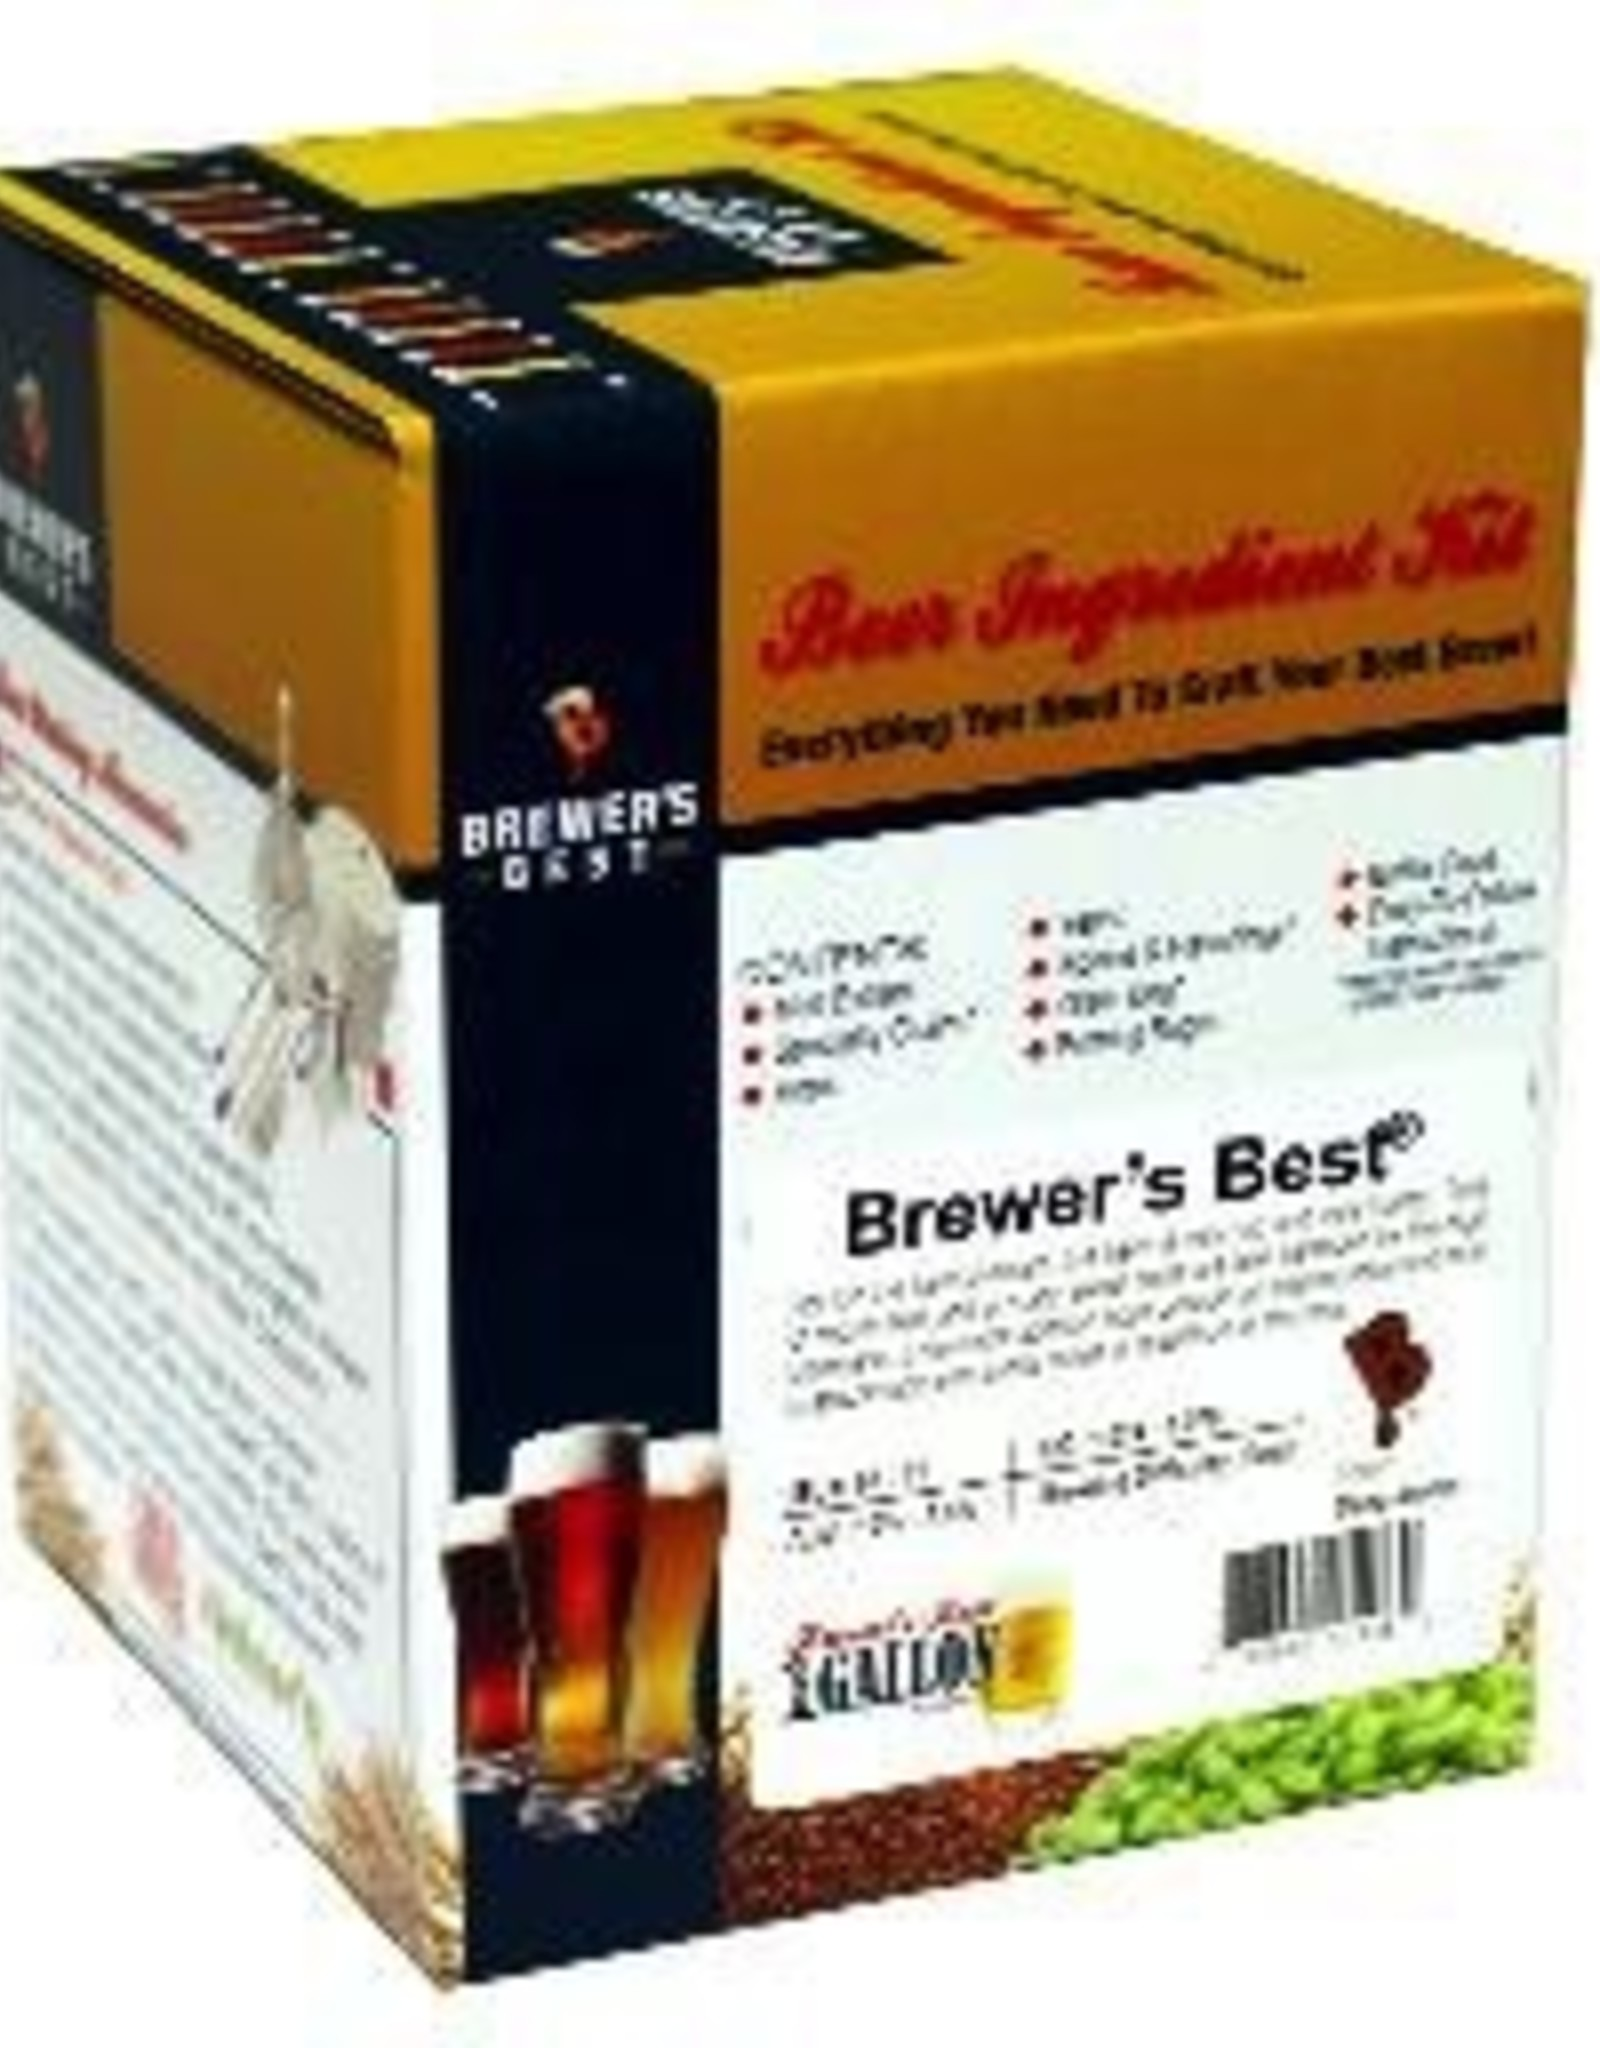 BREWERS BEST PORTER ONE GALLON INGREDIENT KIT PACKAGE